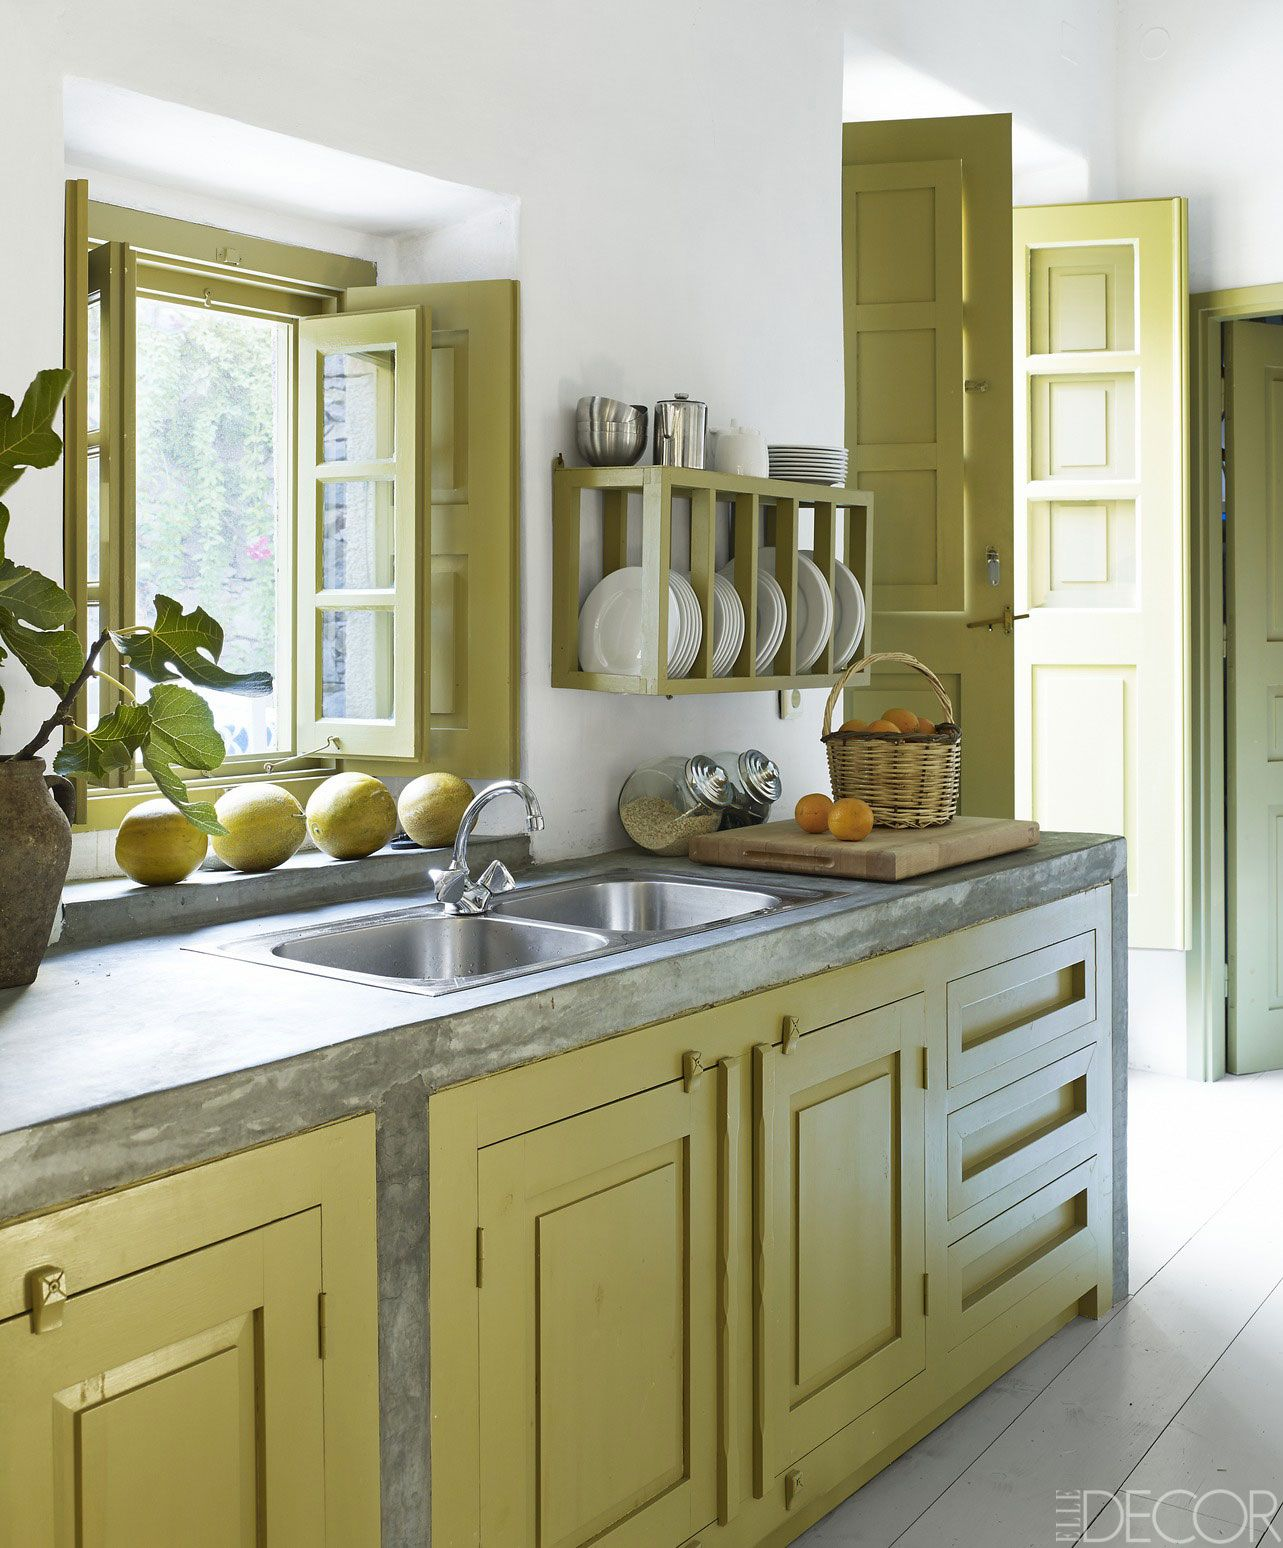 Kitchen Pictures Ideas 50 Small Kitchen Design Ideas  Decorating Tiny Kitchens